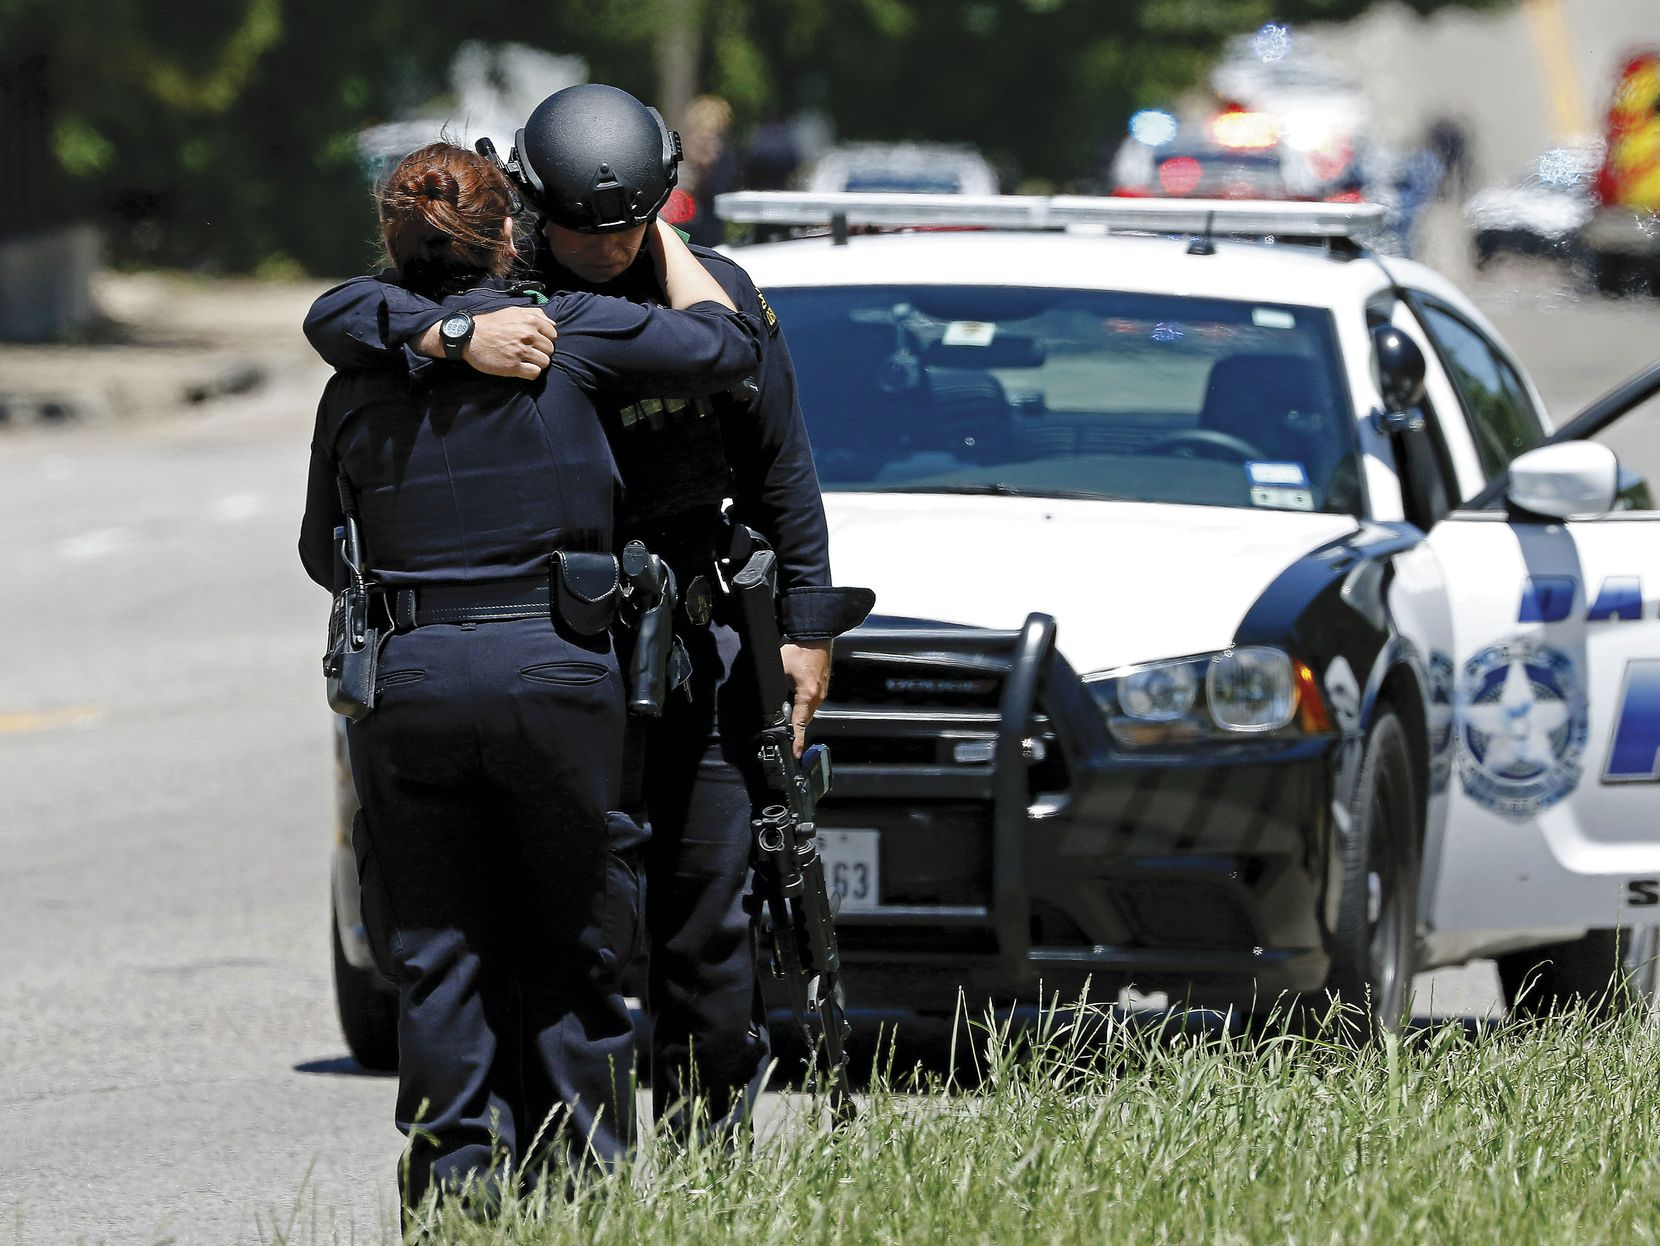 Two Dallas police officers comfort each other at a shooting scene on Dolphin Road where a Dallas Fire-Rescue paramedic nearly lost his life to a suicidal gunman. The paramedic, William An, spent almost a month in the hospital.